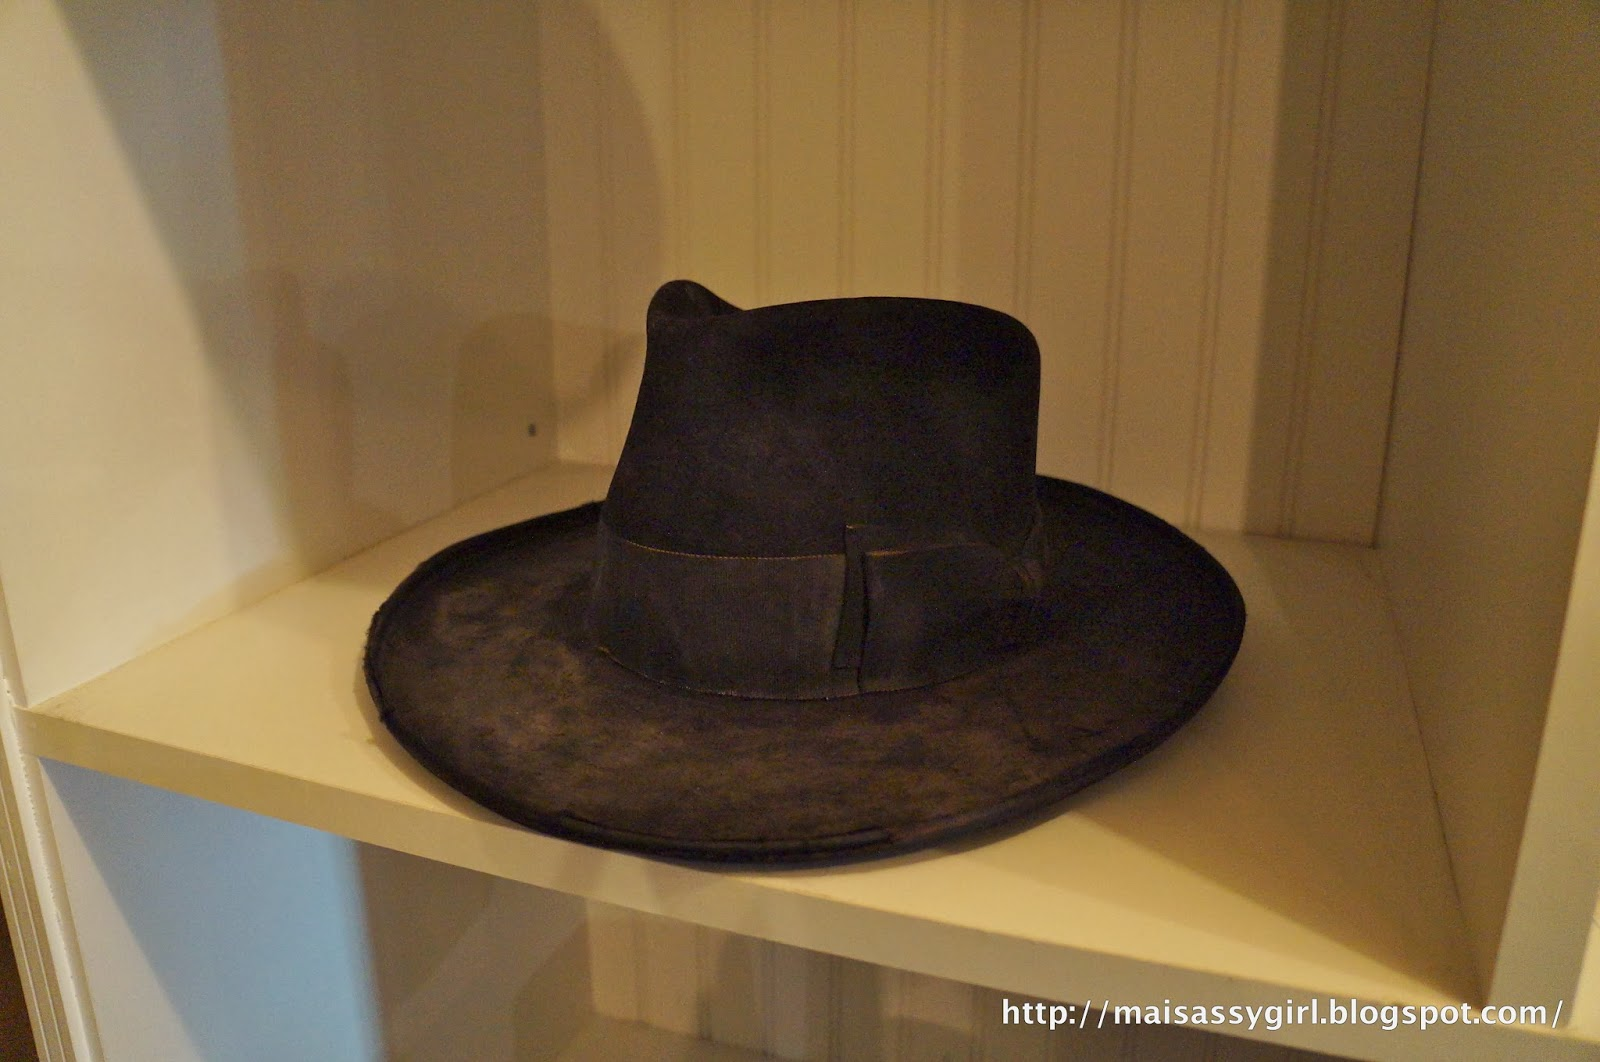 8a7ca34a maisassygirl: HAT MAKER - NICK FOUQUET on ABBOT KINNEY, VENICE